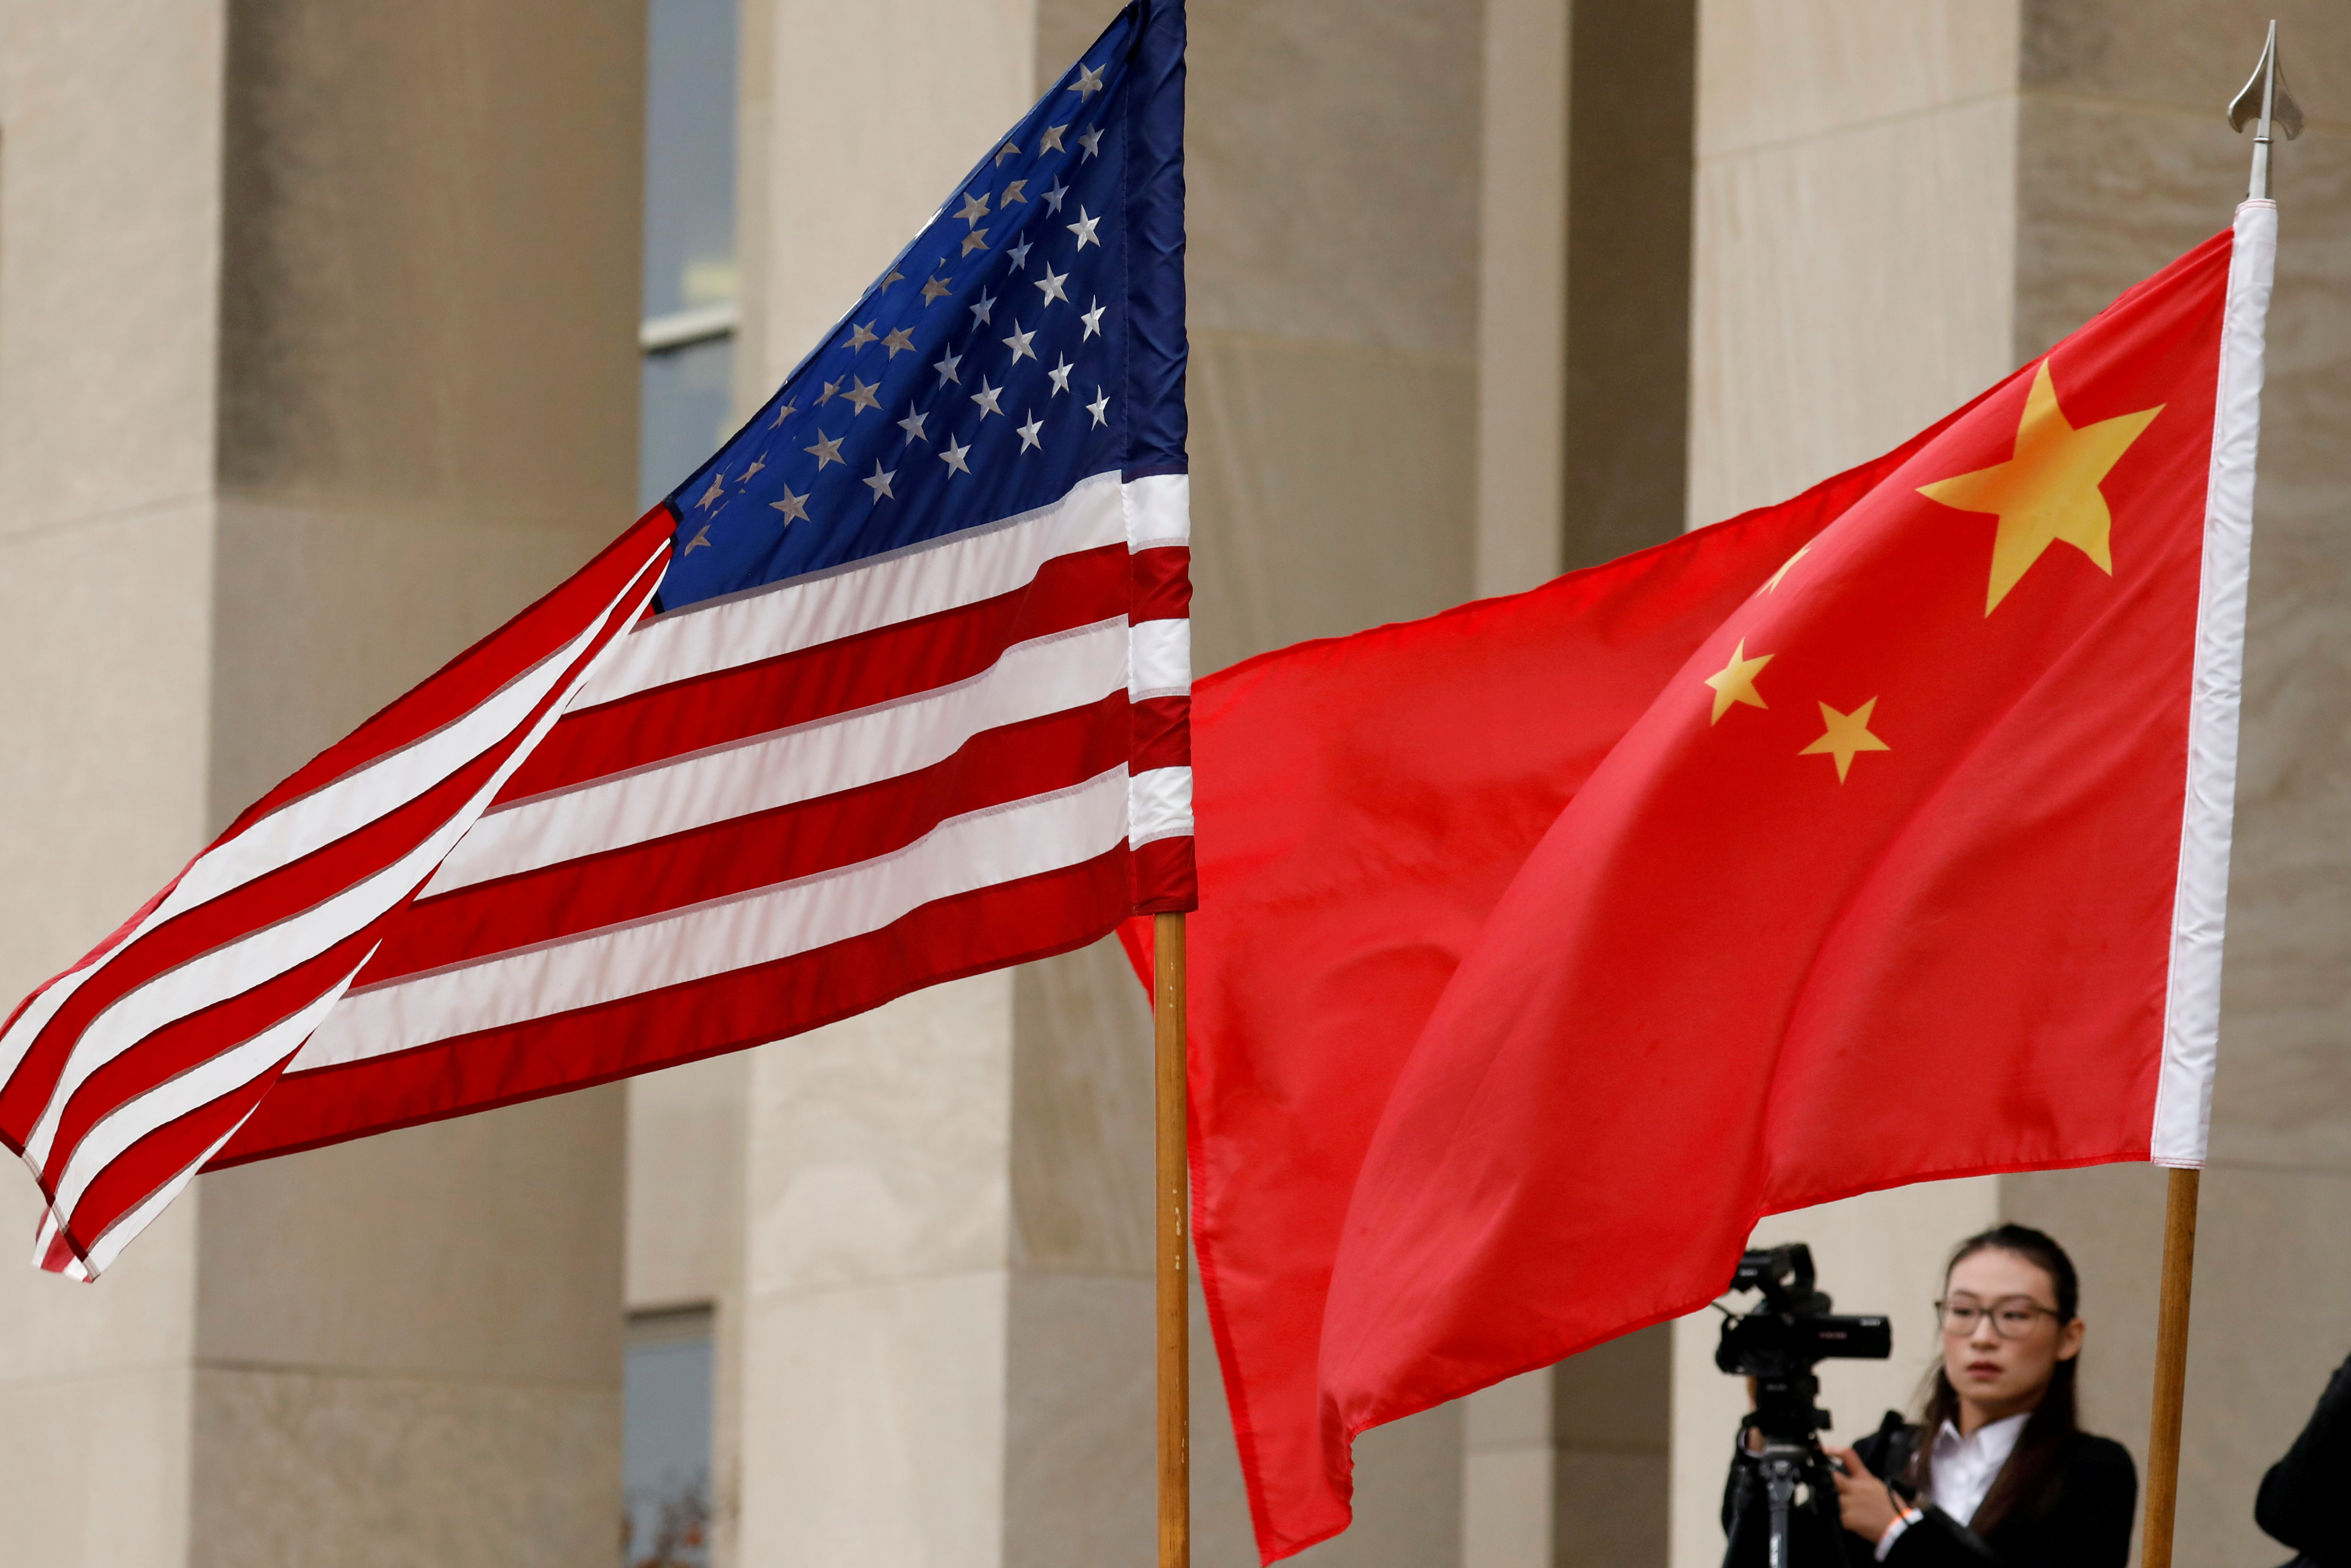 U.S. and Chinese flags are seen before a meeting between senior defence officials from both countries at the Pentagon in Arlington, Virginia, U.S., November 9, 2018. REUTERS/Yuri Gripas/File Photo